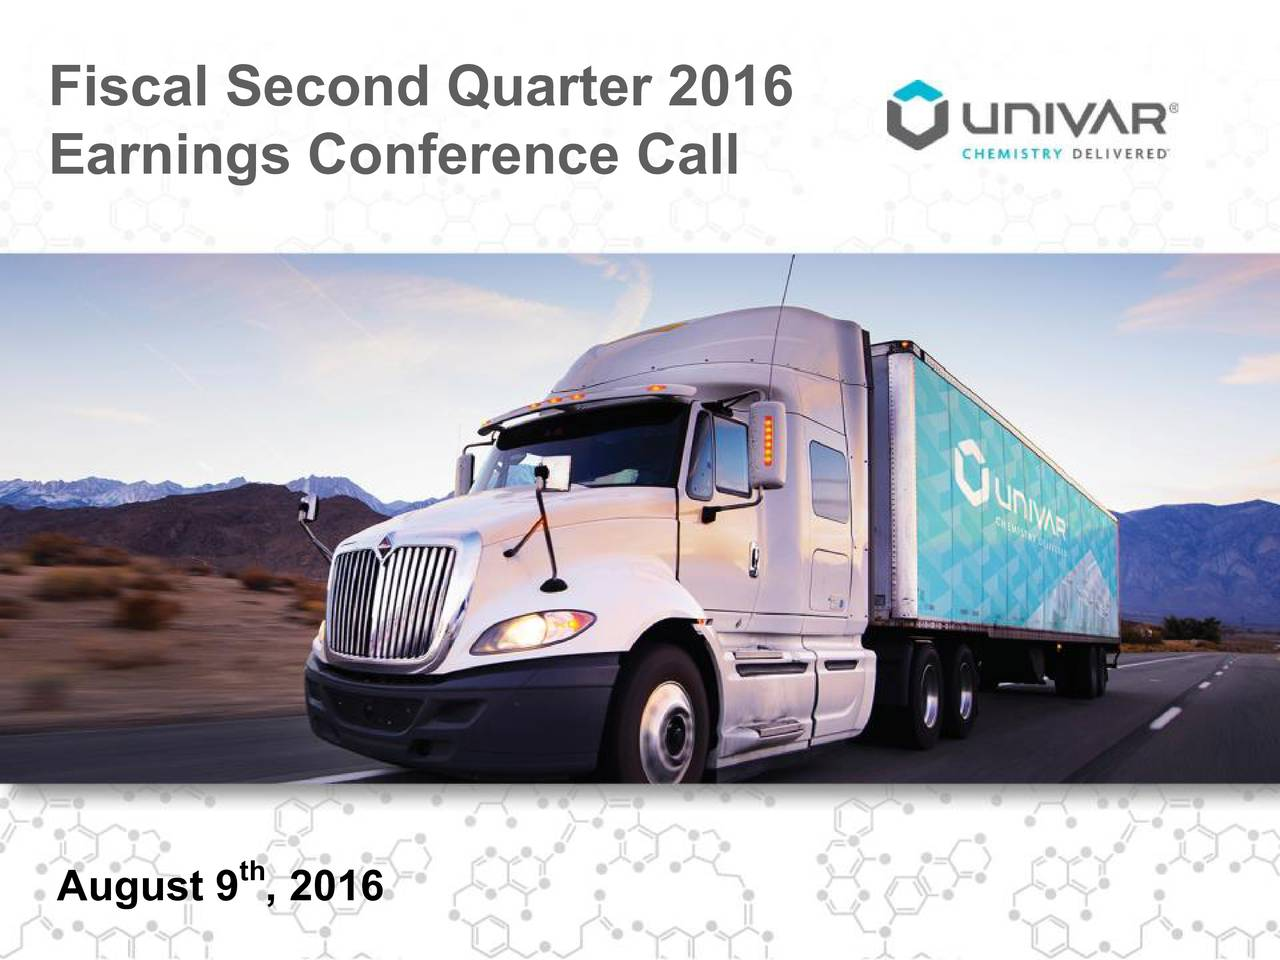 Earnings Conference Call th August 9 , 2016